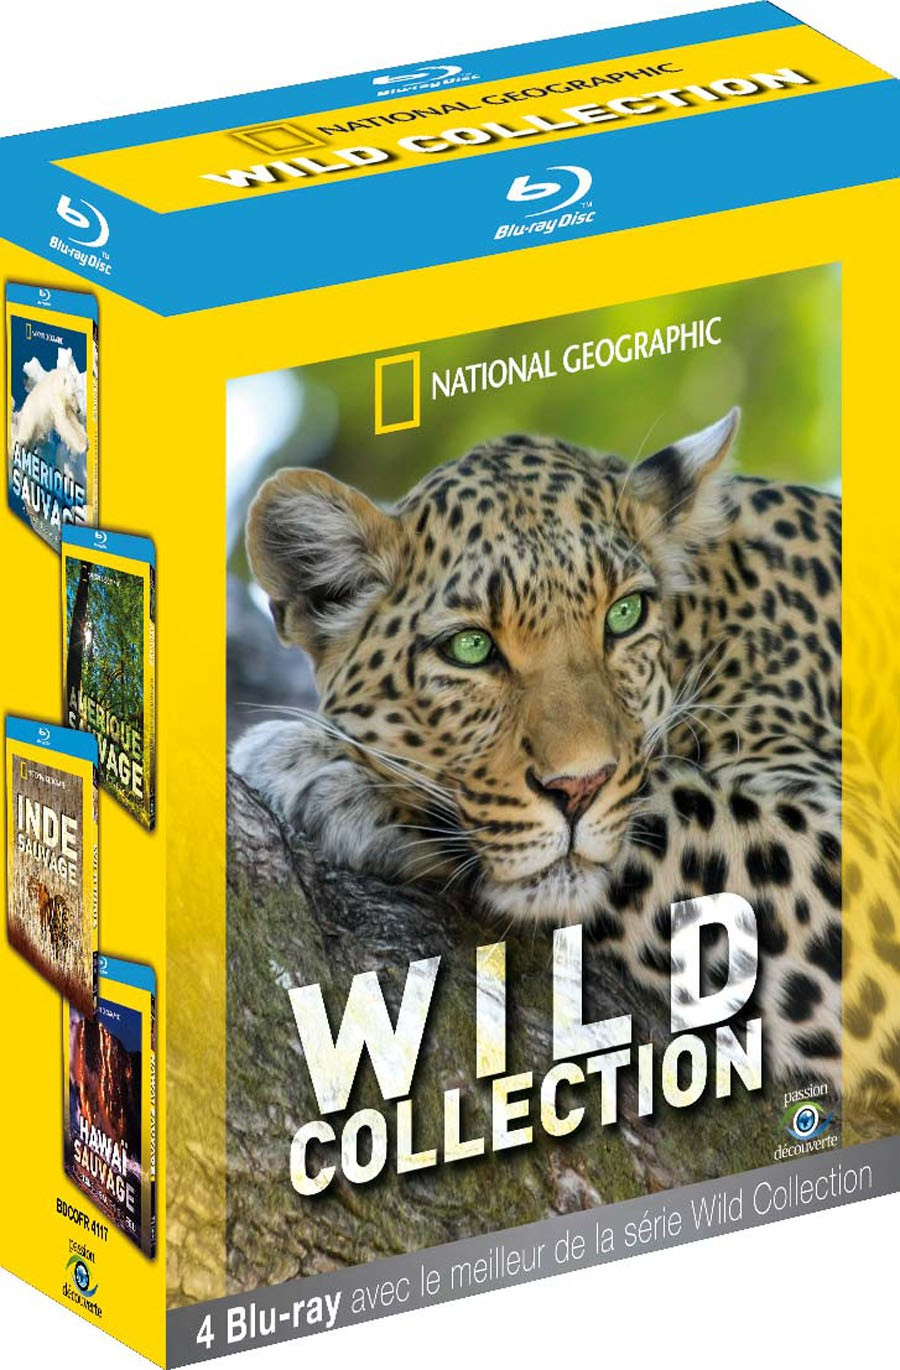 NATIONAL GEOGRAPHIC - WILD COLLECTION 4 BLU-RAY